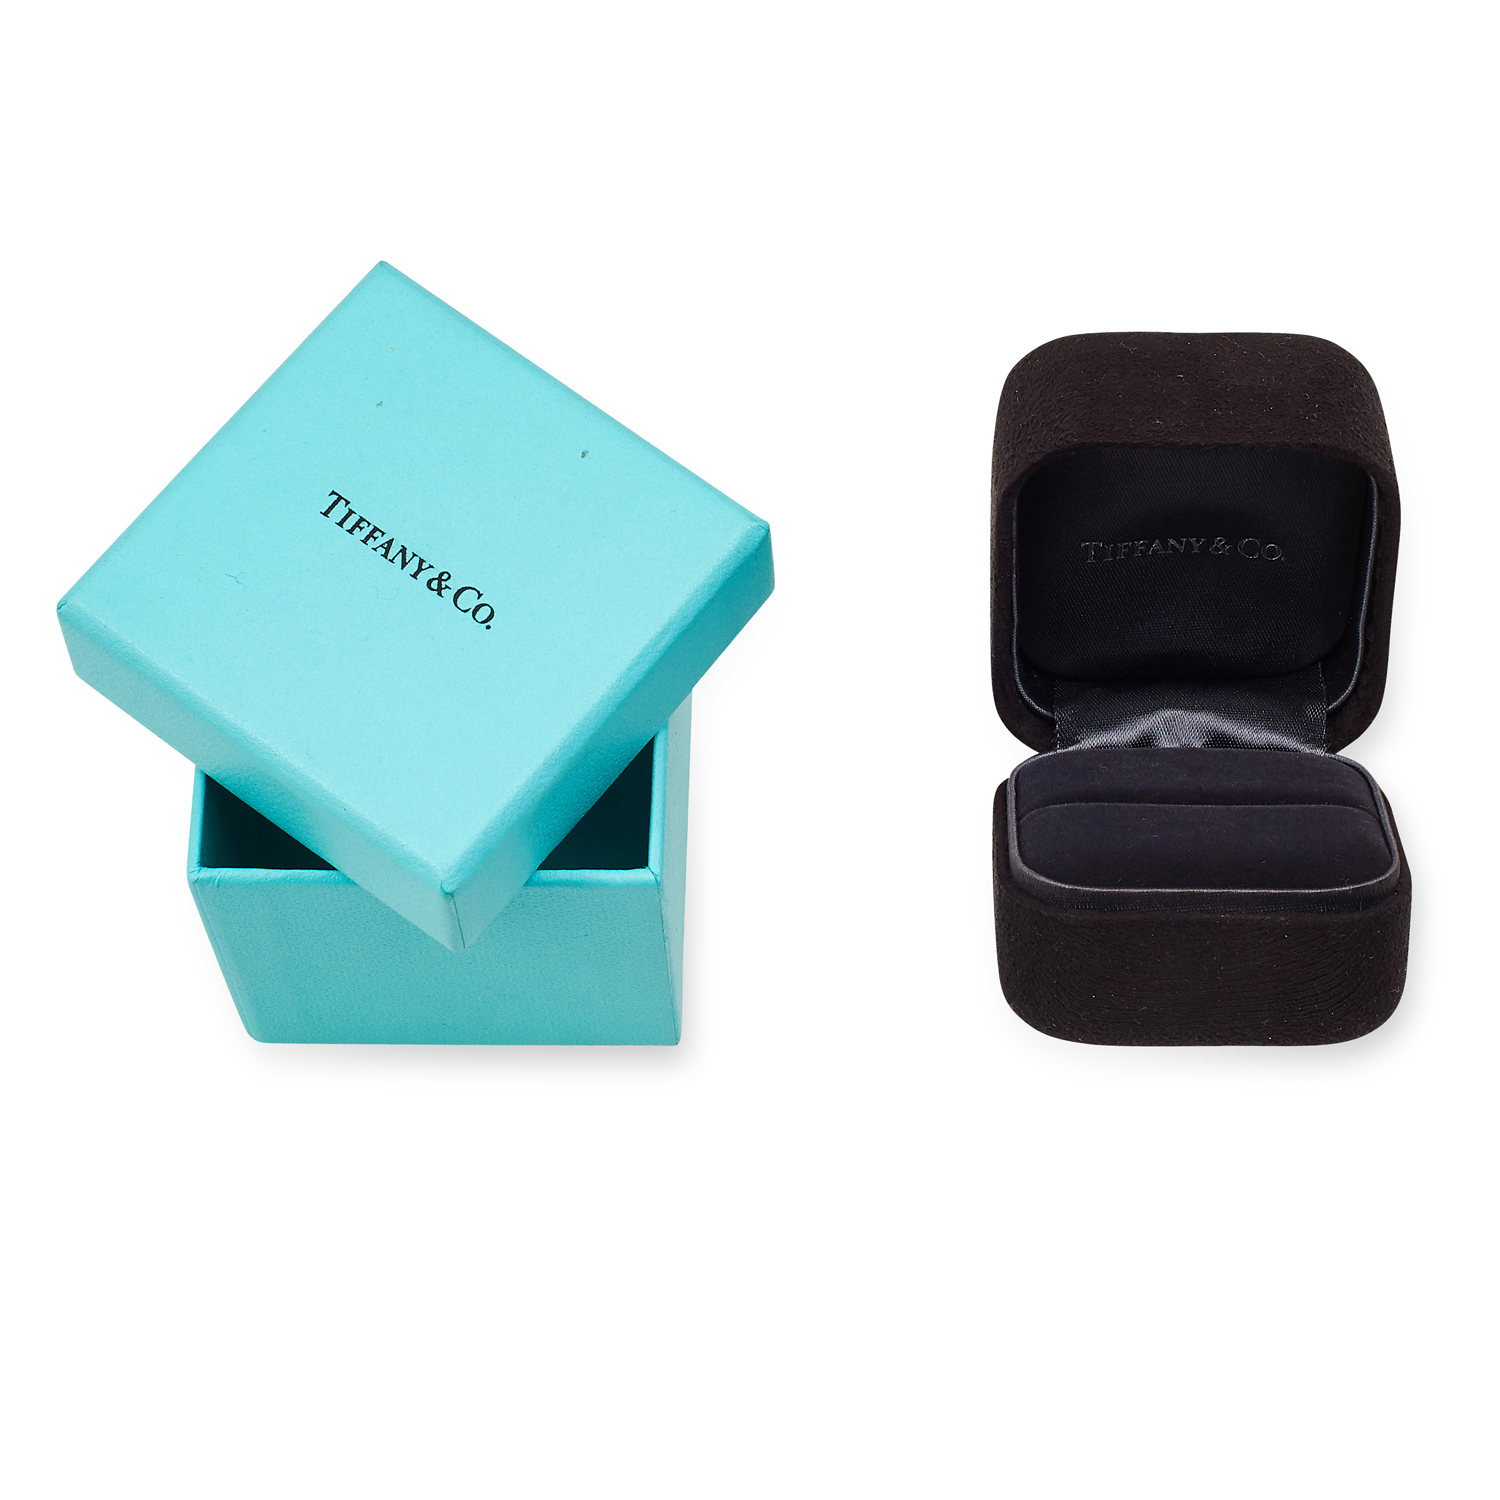 A RING BOX, TIFFANY & CO - Image 2 of 2